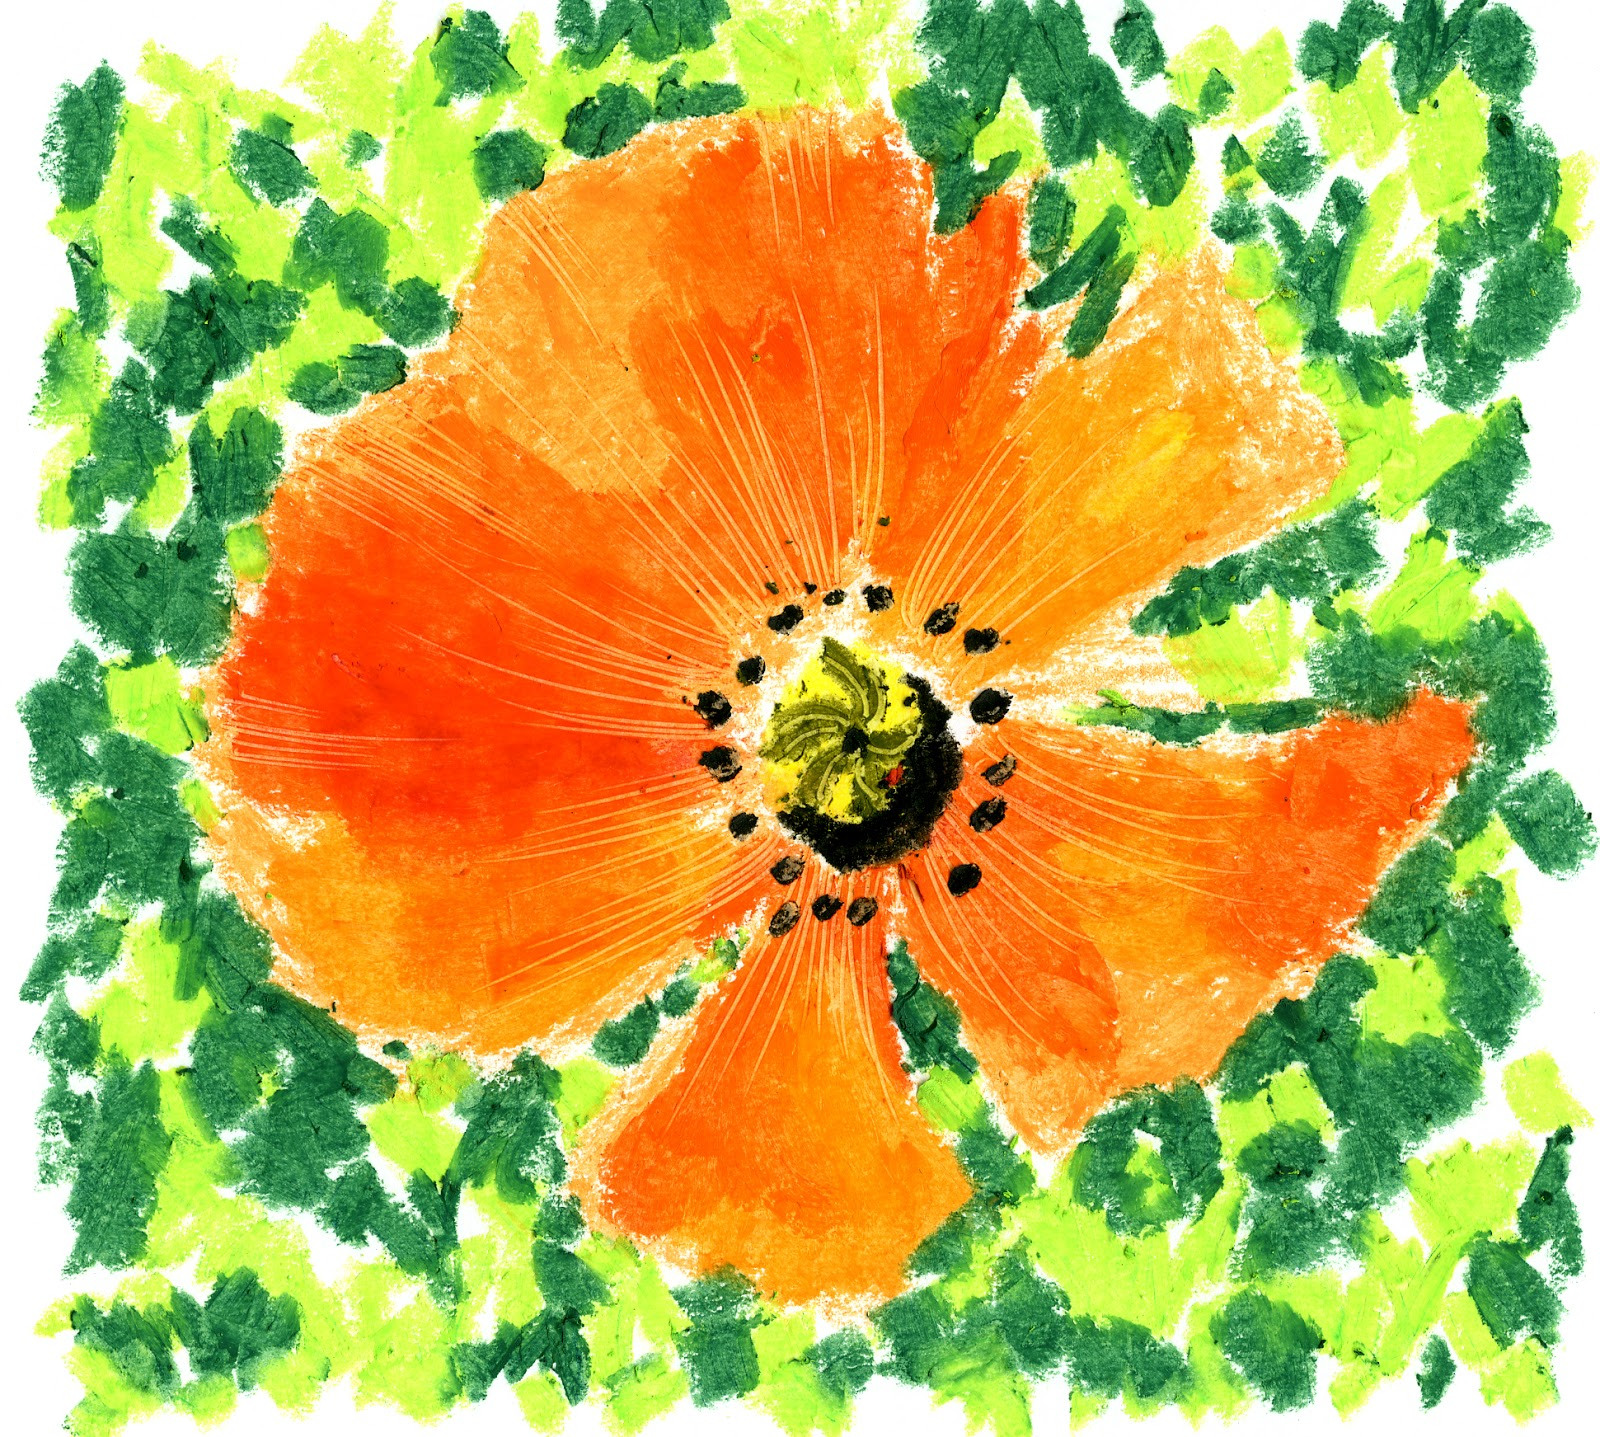 How To Create Beautiful Flowers Using Oil Pastels Using A Bright Green,  Make Some Bold Marks And Squiggles Onto The White Background,